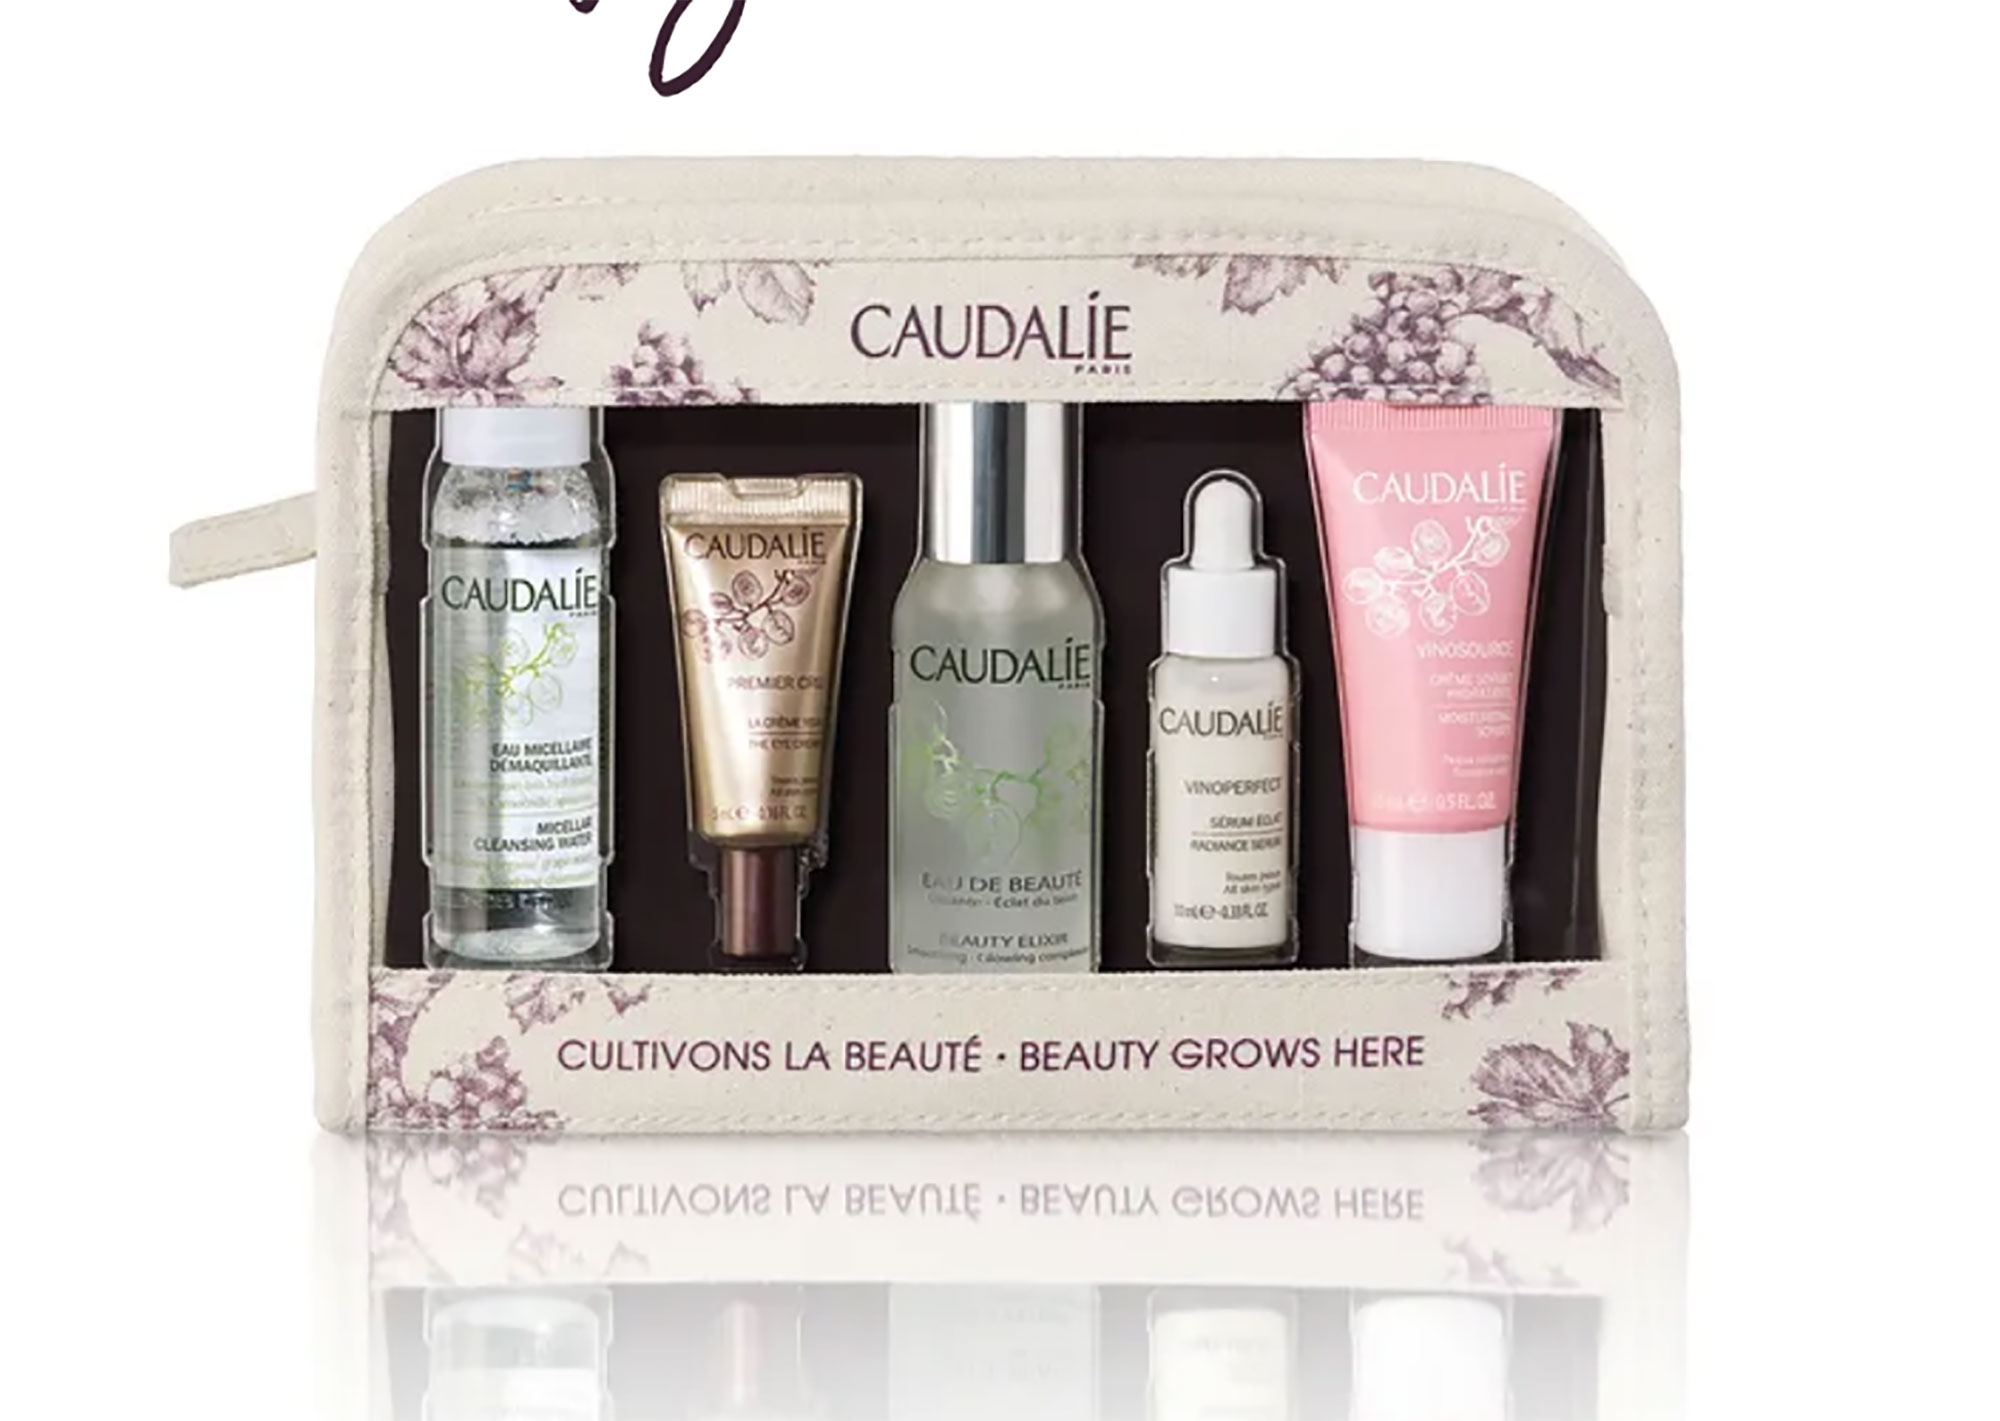 Caudalie Favorites Set Mother's Day Gift Guide - This travel-sized kit of the French skincare brand's bestselling products will make her summer vacay packing a snap. $44, us.caudalie.com